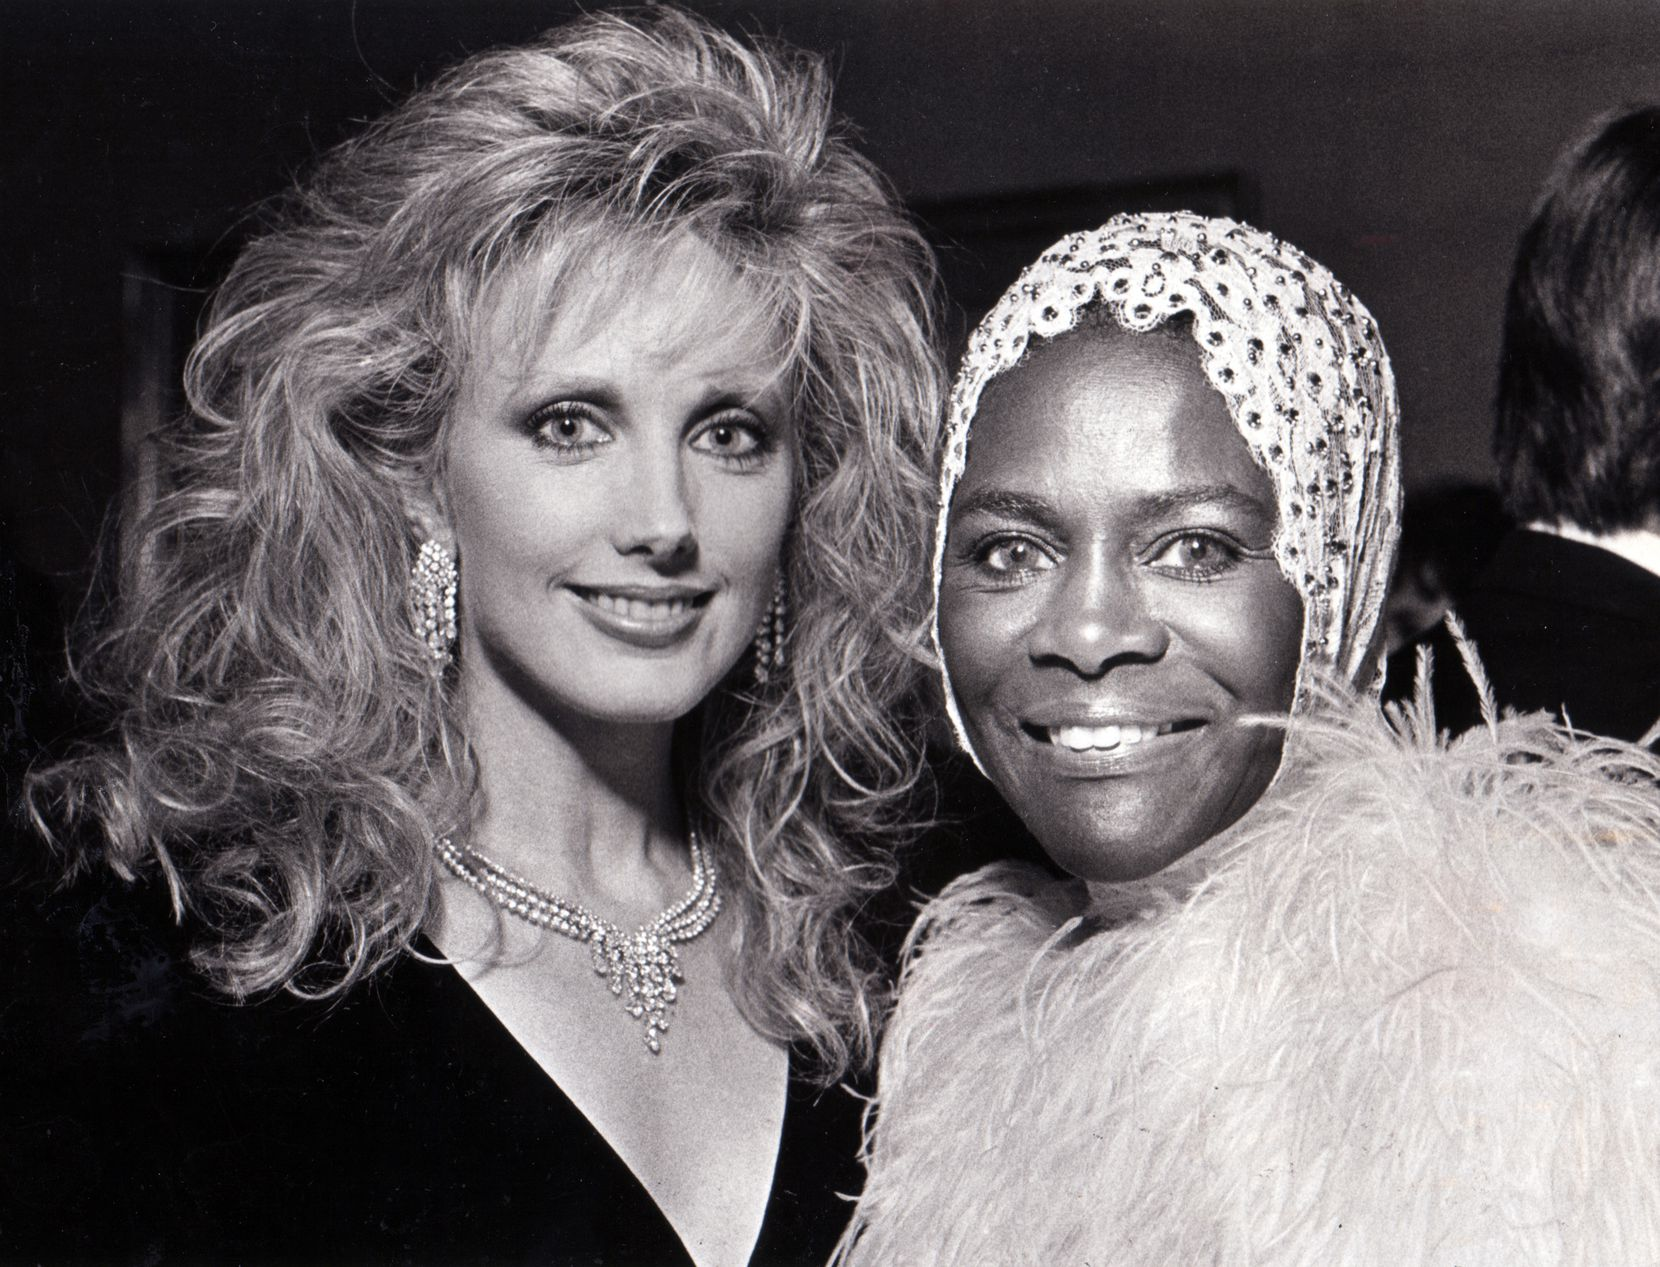 Morgan Fairchild (left) and Cicely Tyson are seen in this October 25, 1987 party photo.